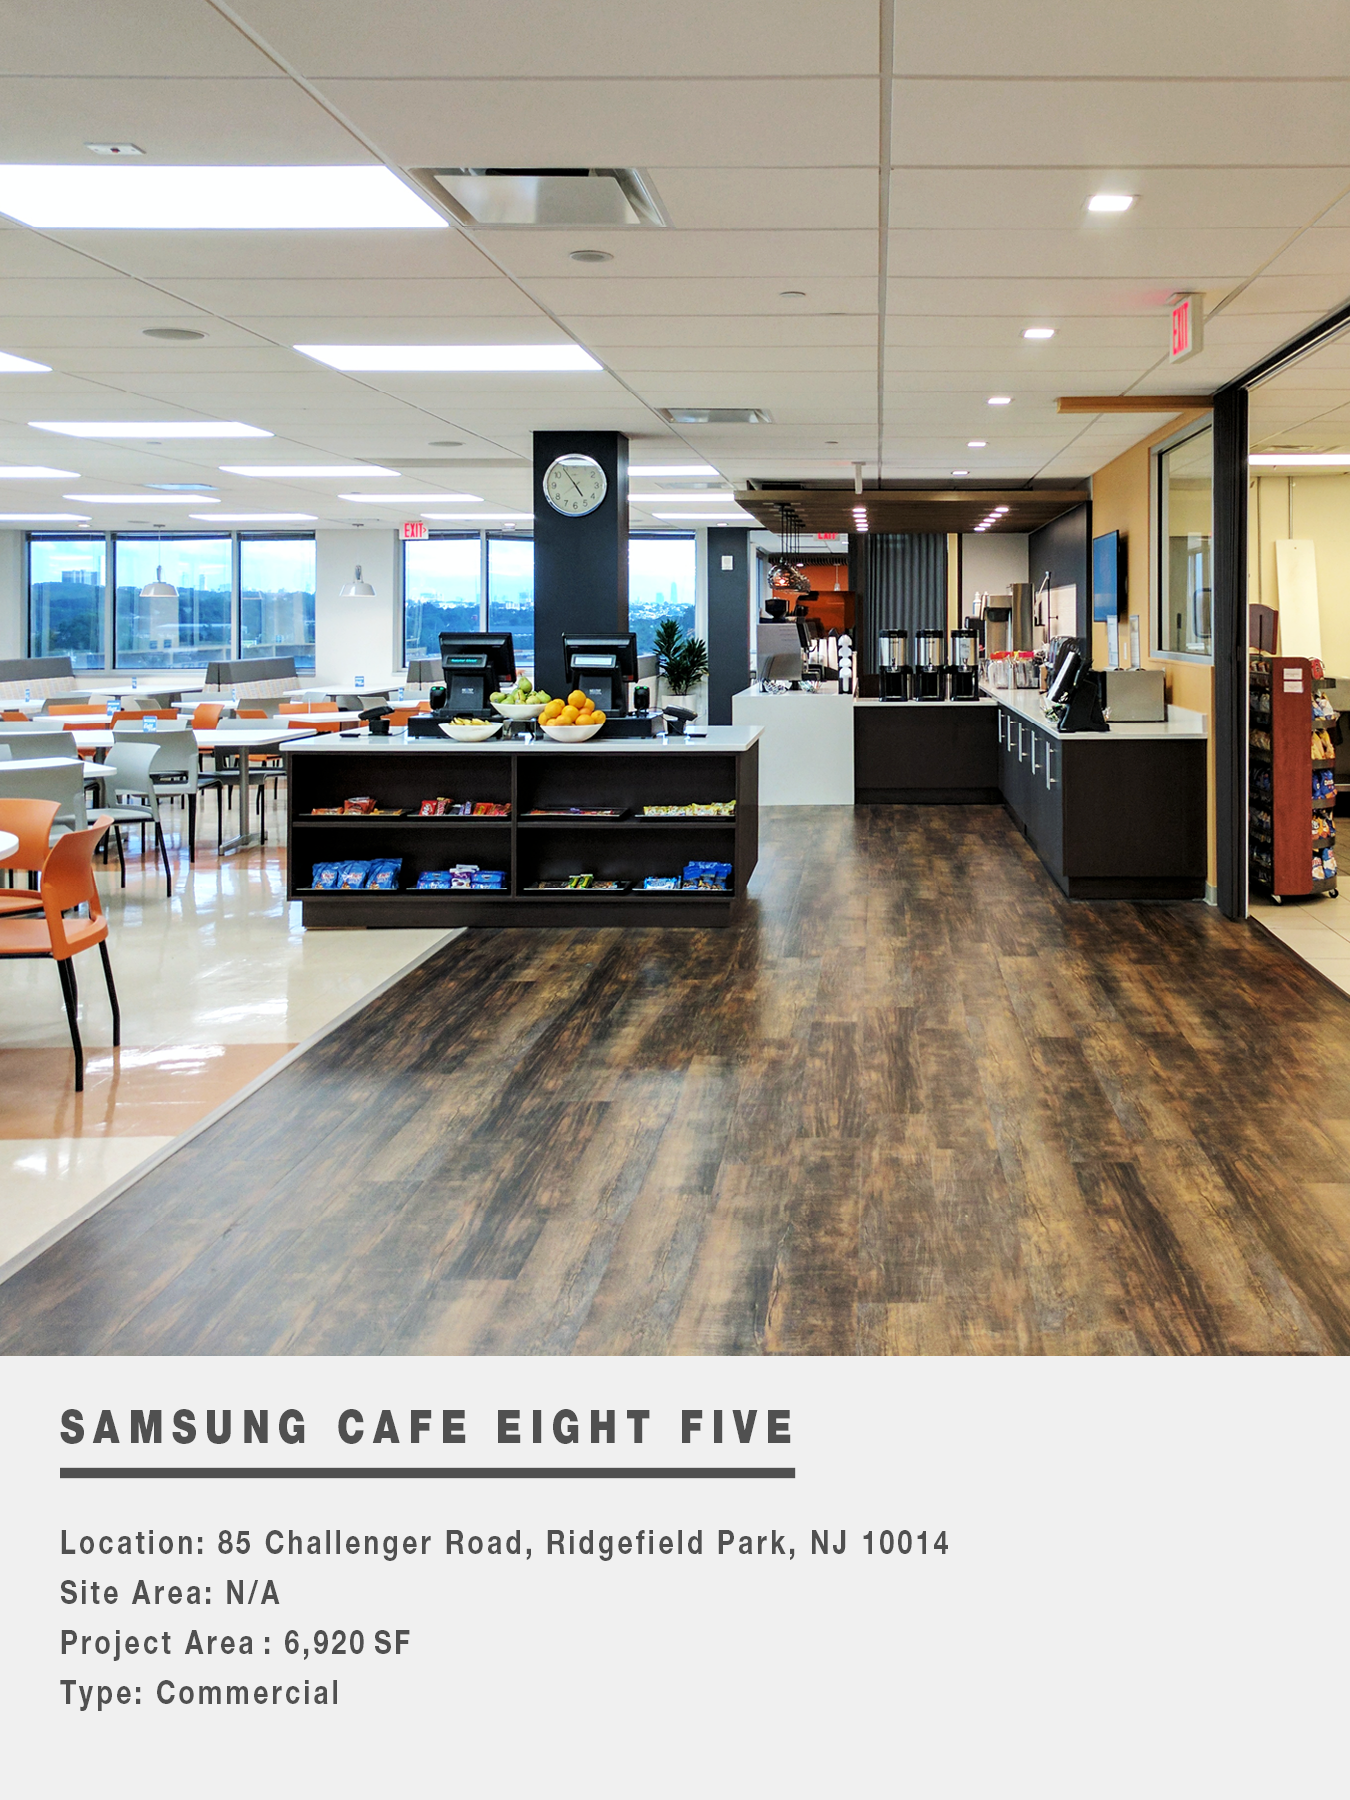 SAMSUNG CAFE EIGHT FIVE